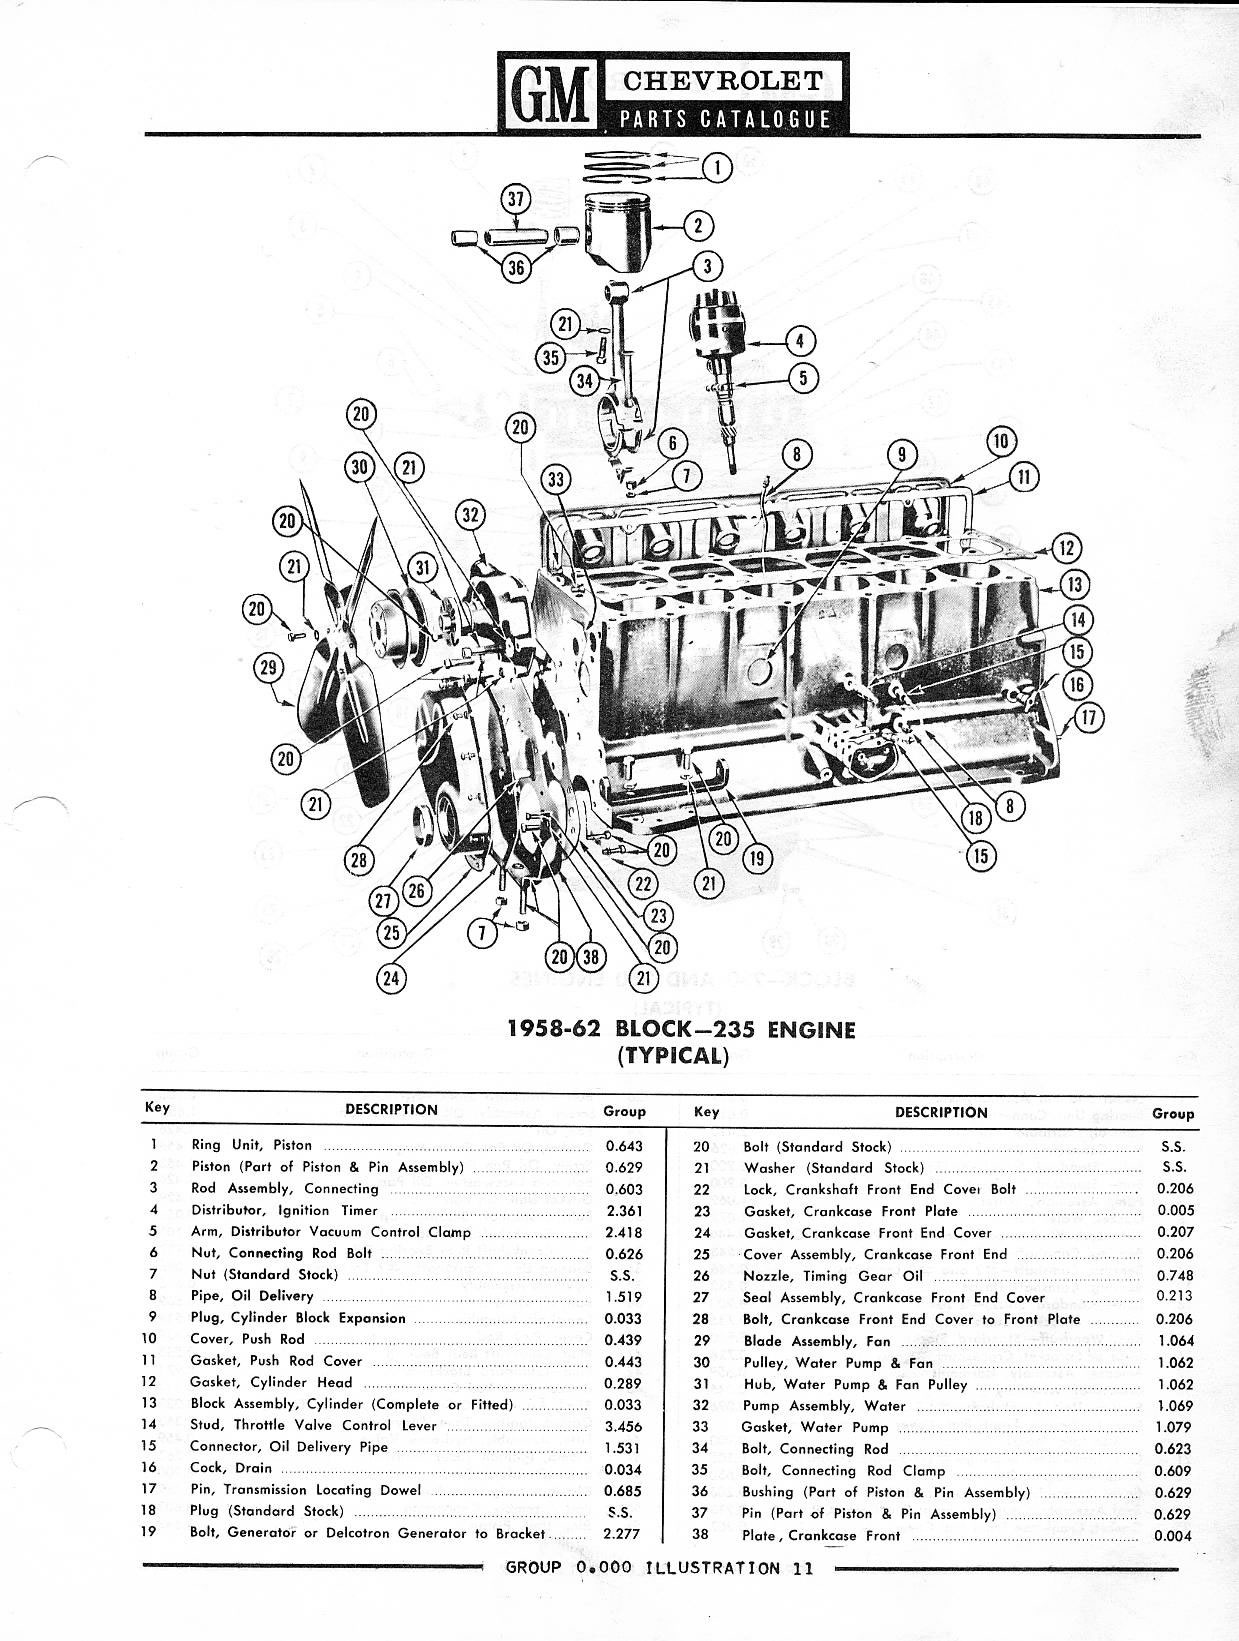 1936 chevy truck parts catalog